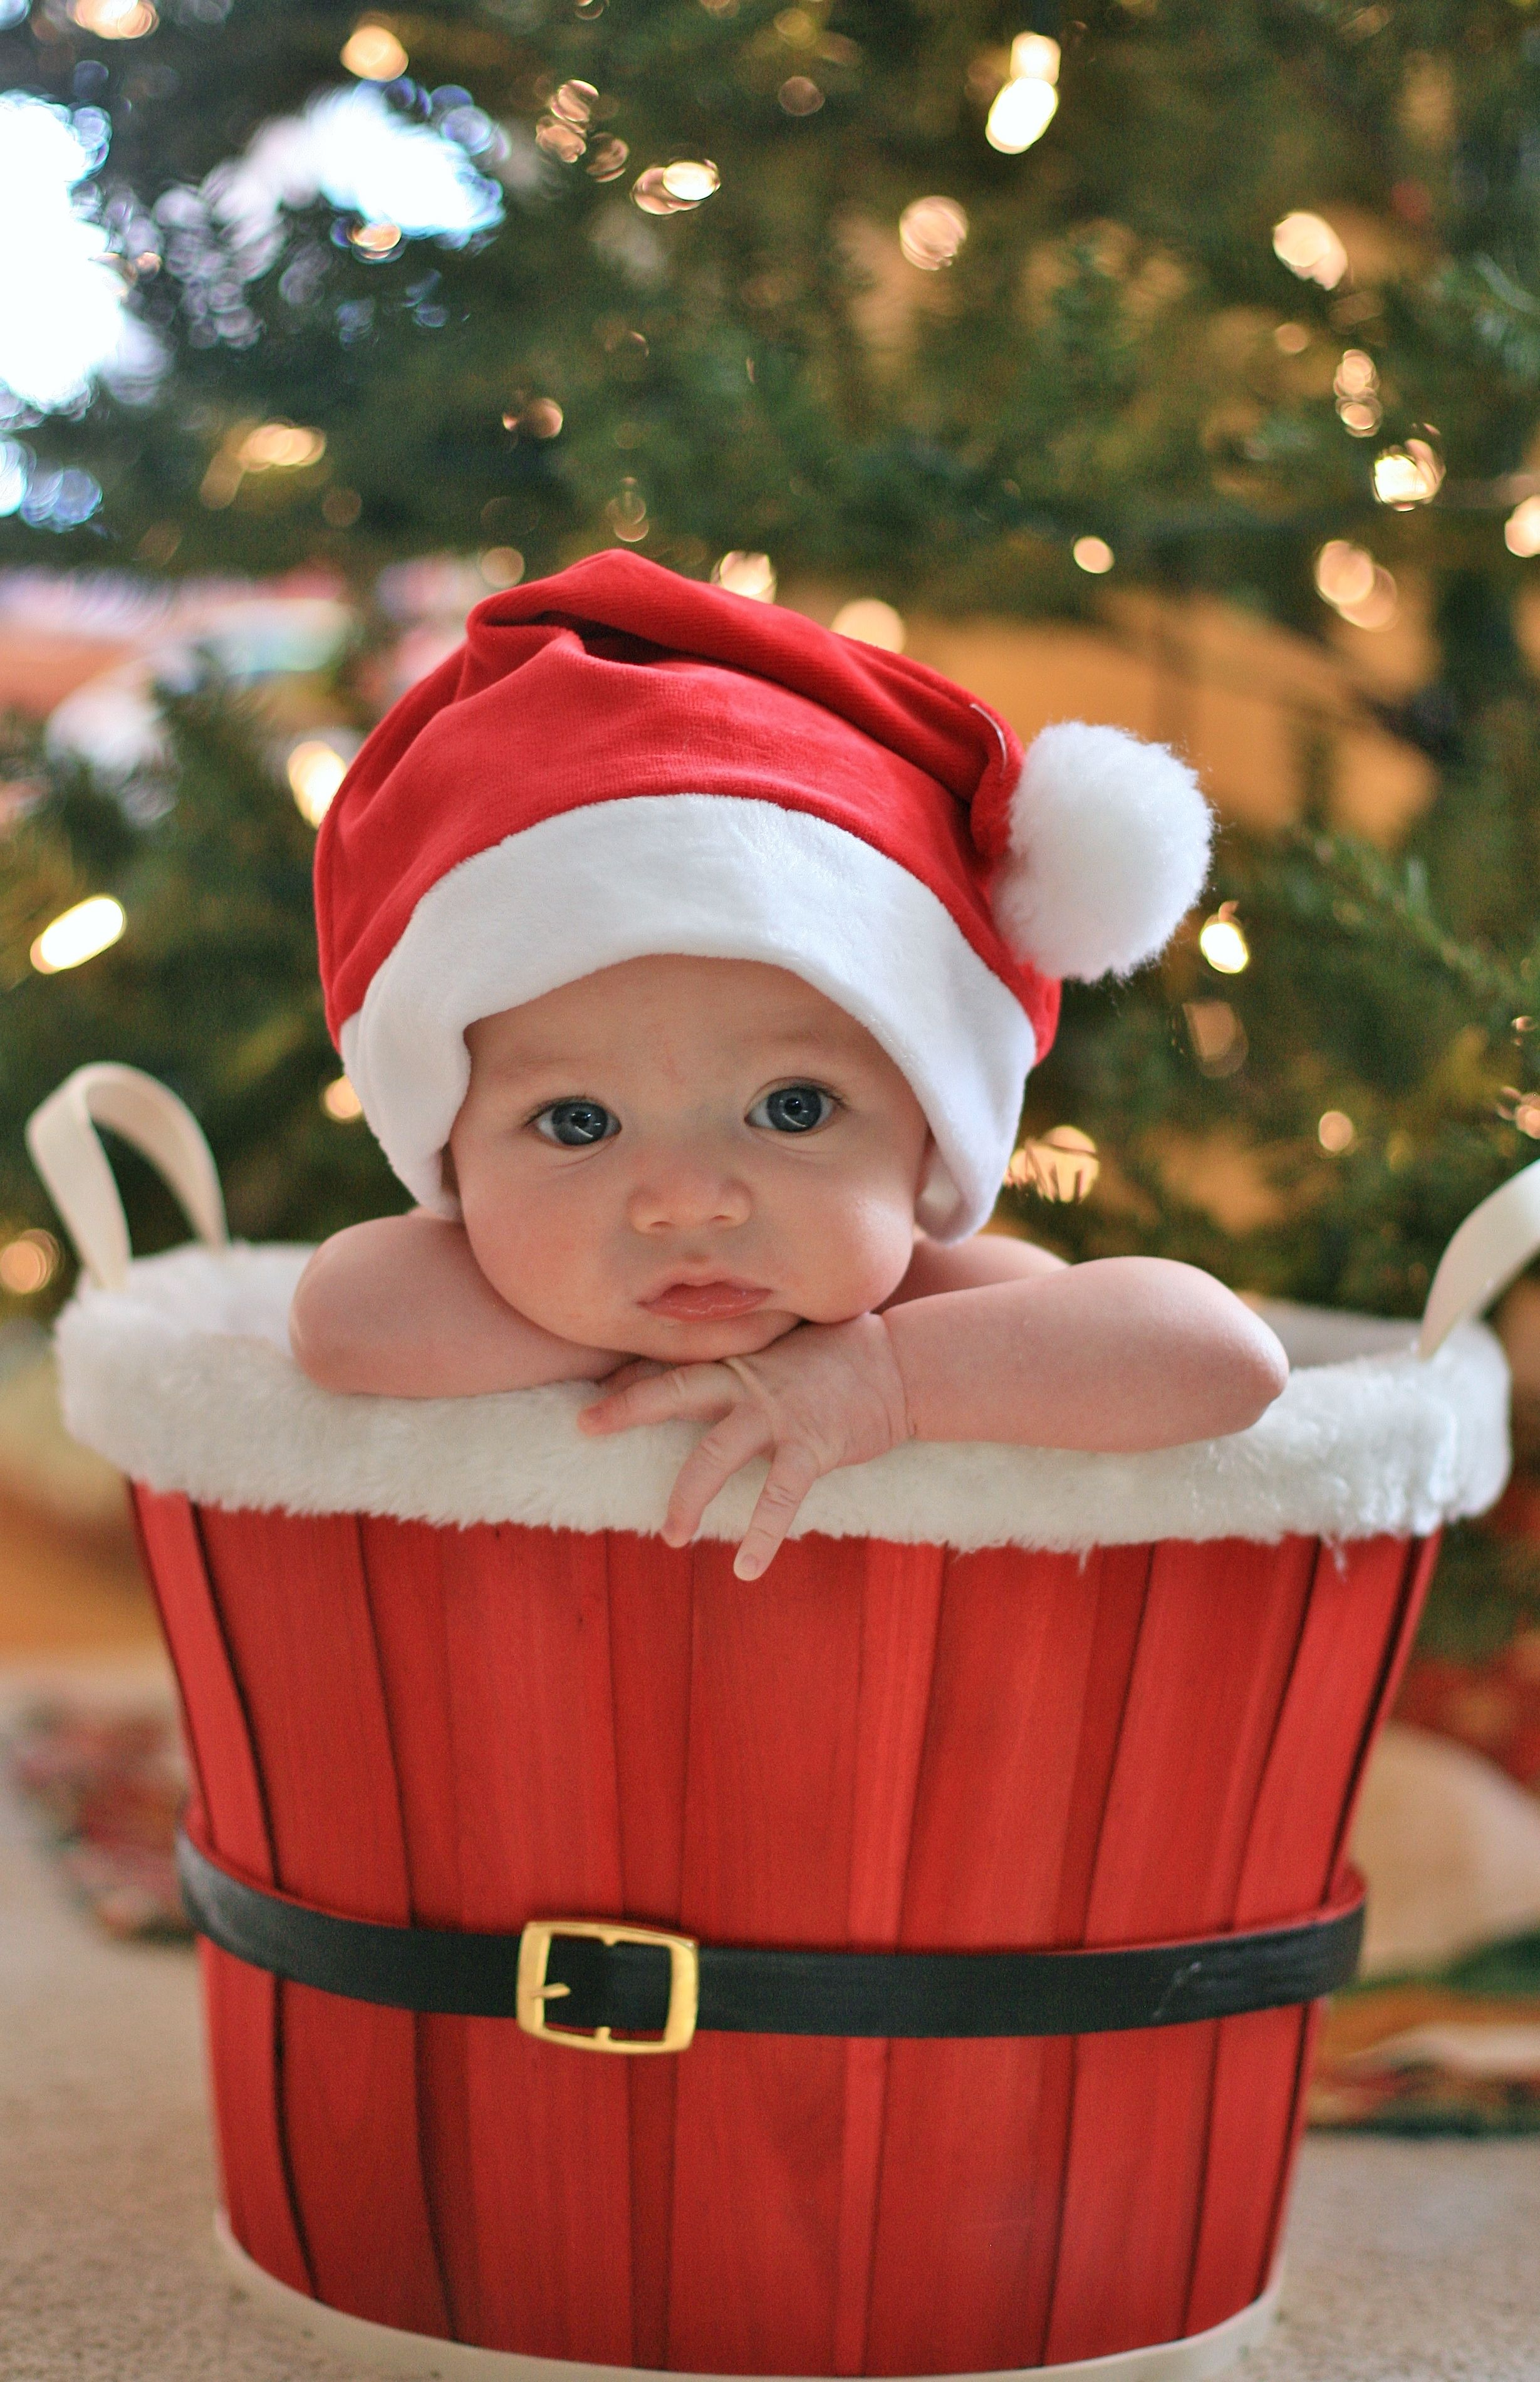 `a great Christmas photo!